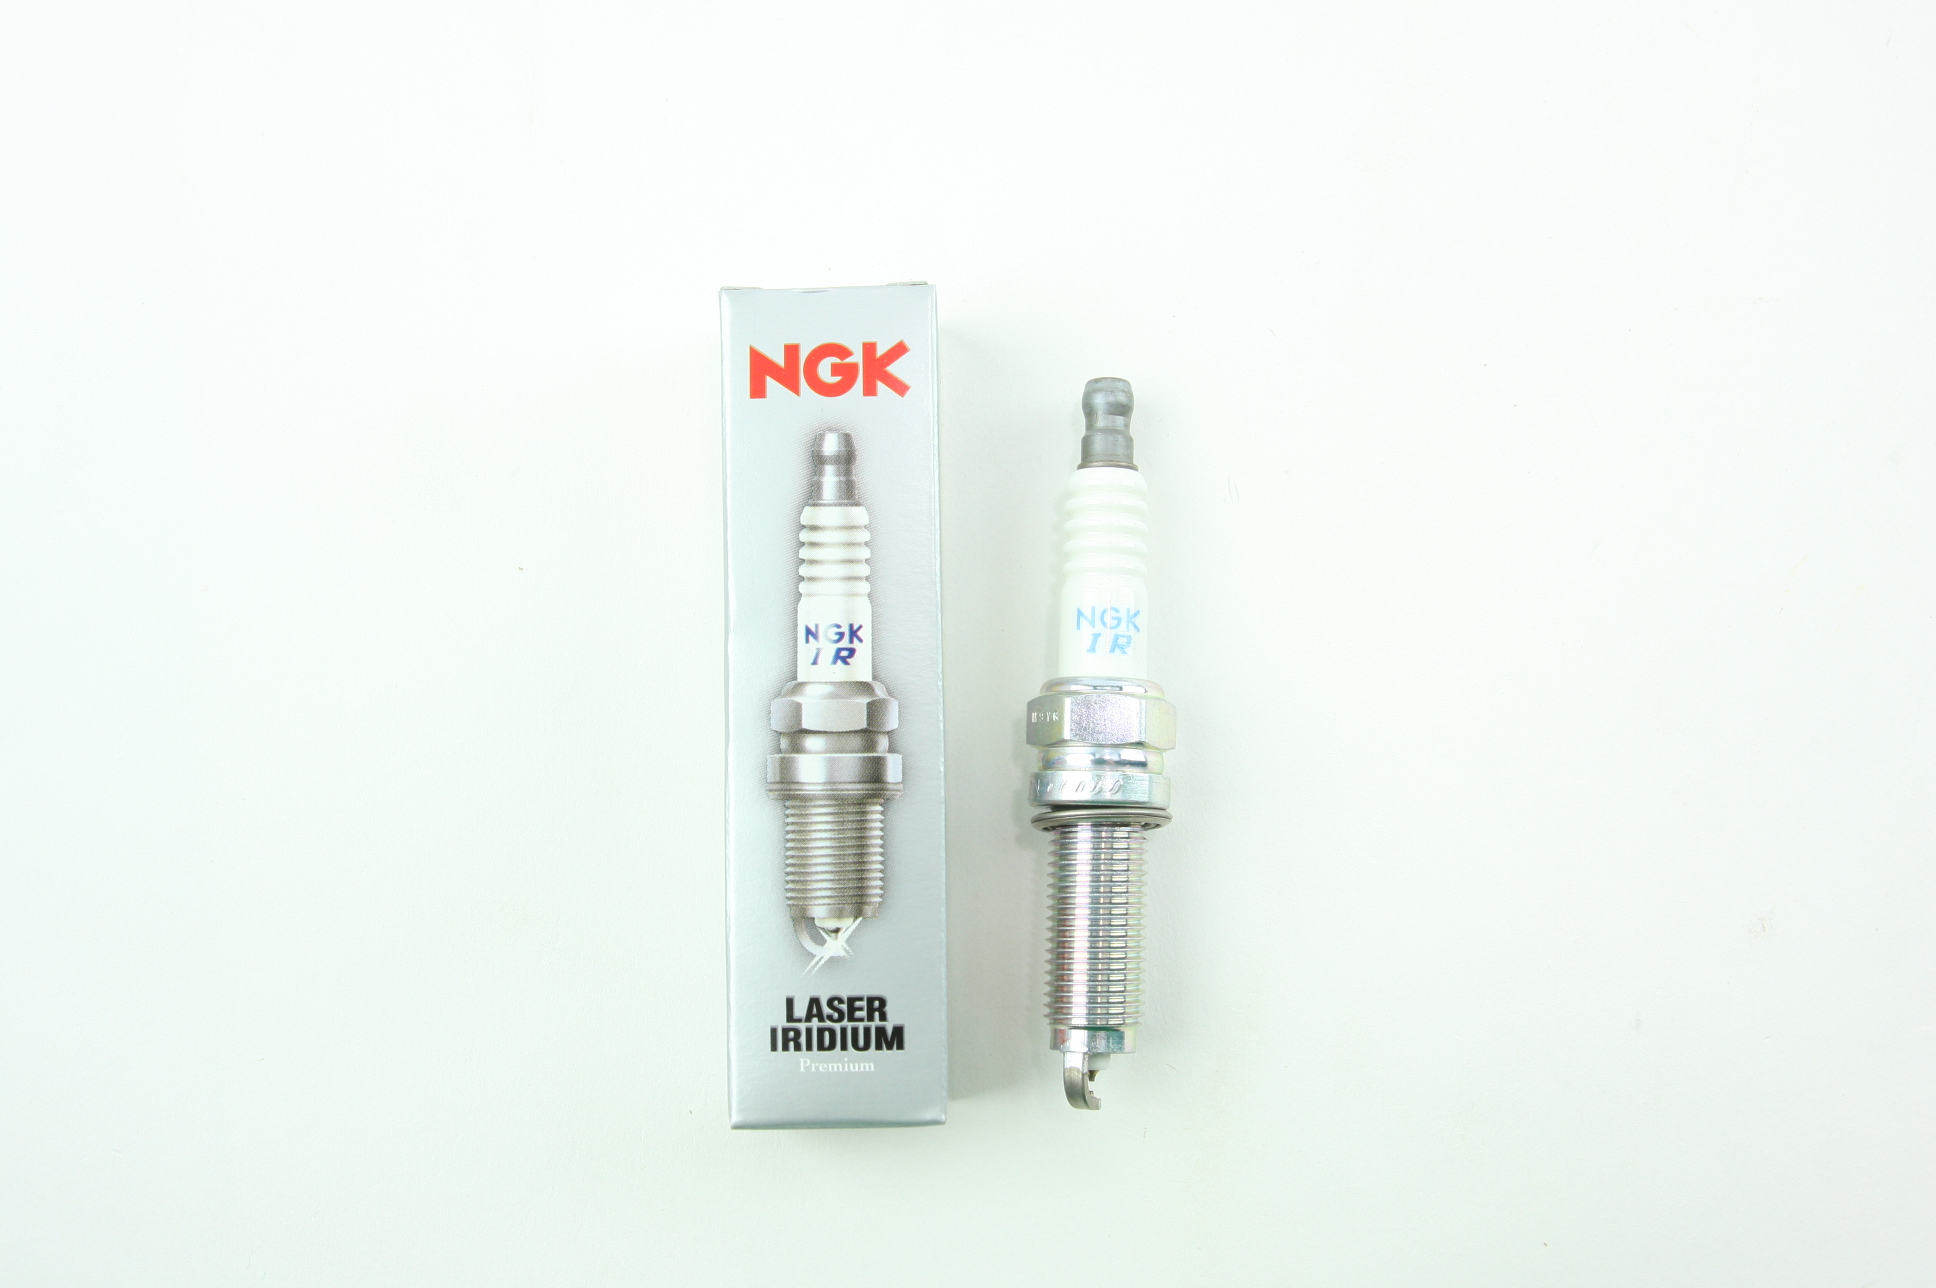 Set of 4 NGK 95710 Laser Iridium Spark Plugs DILZKR7B11GS New fits Honda Acura - image 4